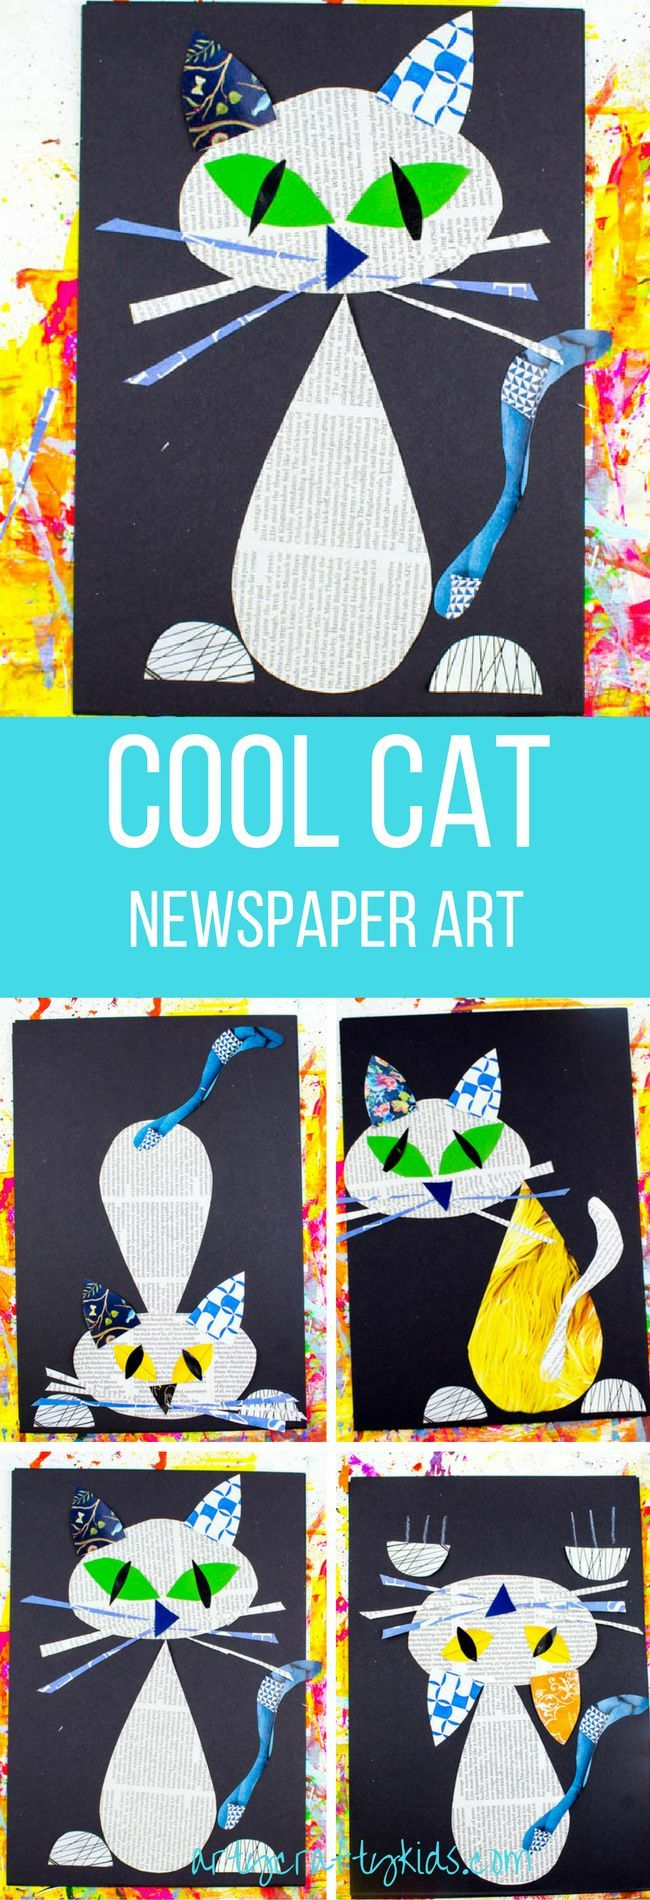 Arty Crafty Kids | Art | Cool Cat Newspaper Art for Kids | A fun recycled cat art project using recycled newspaper and magazines. With the help of a free template kids can make a cat that can strike multiple cool poses!